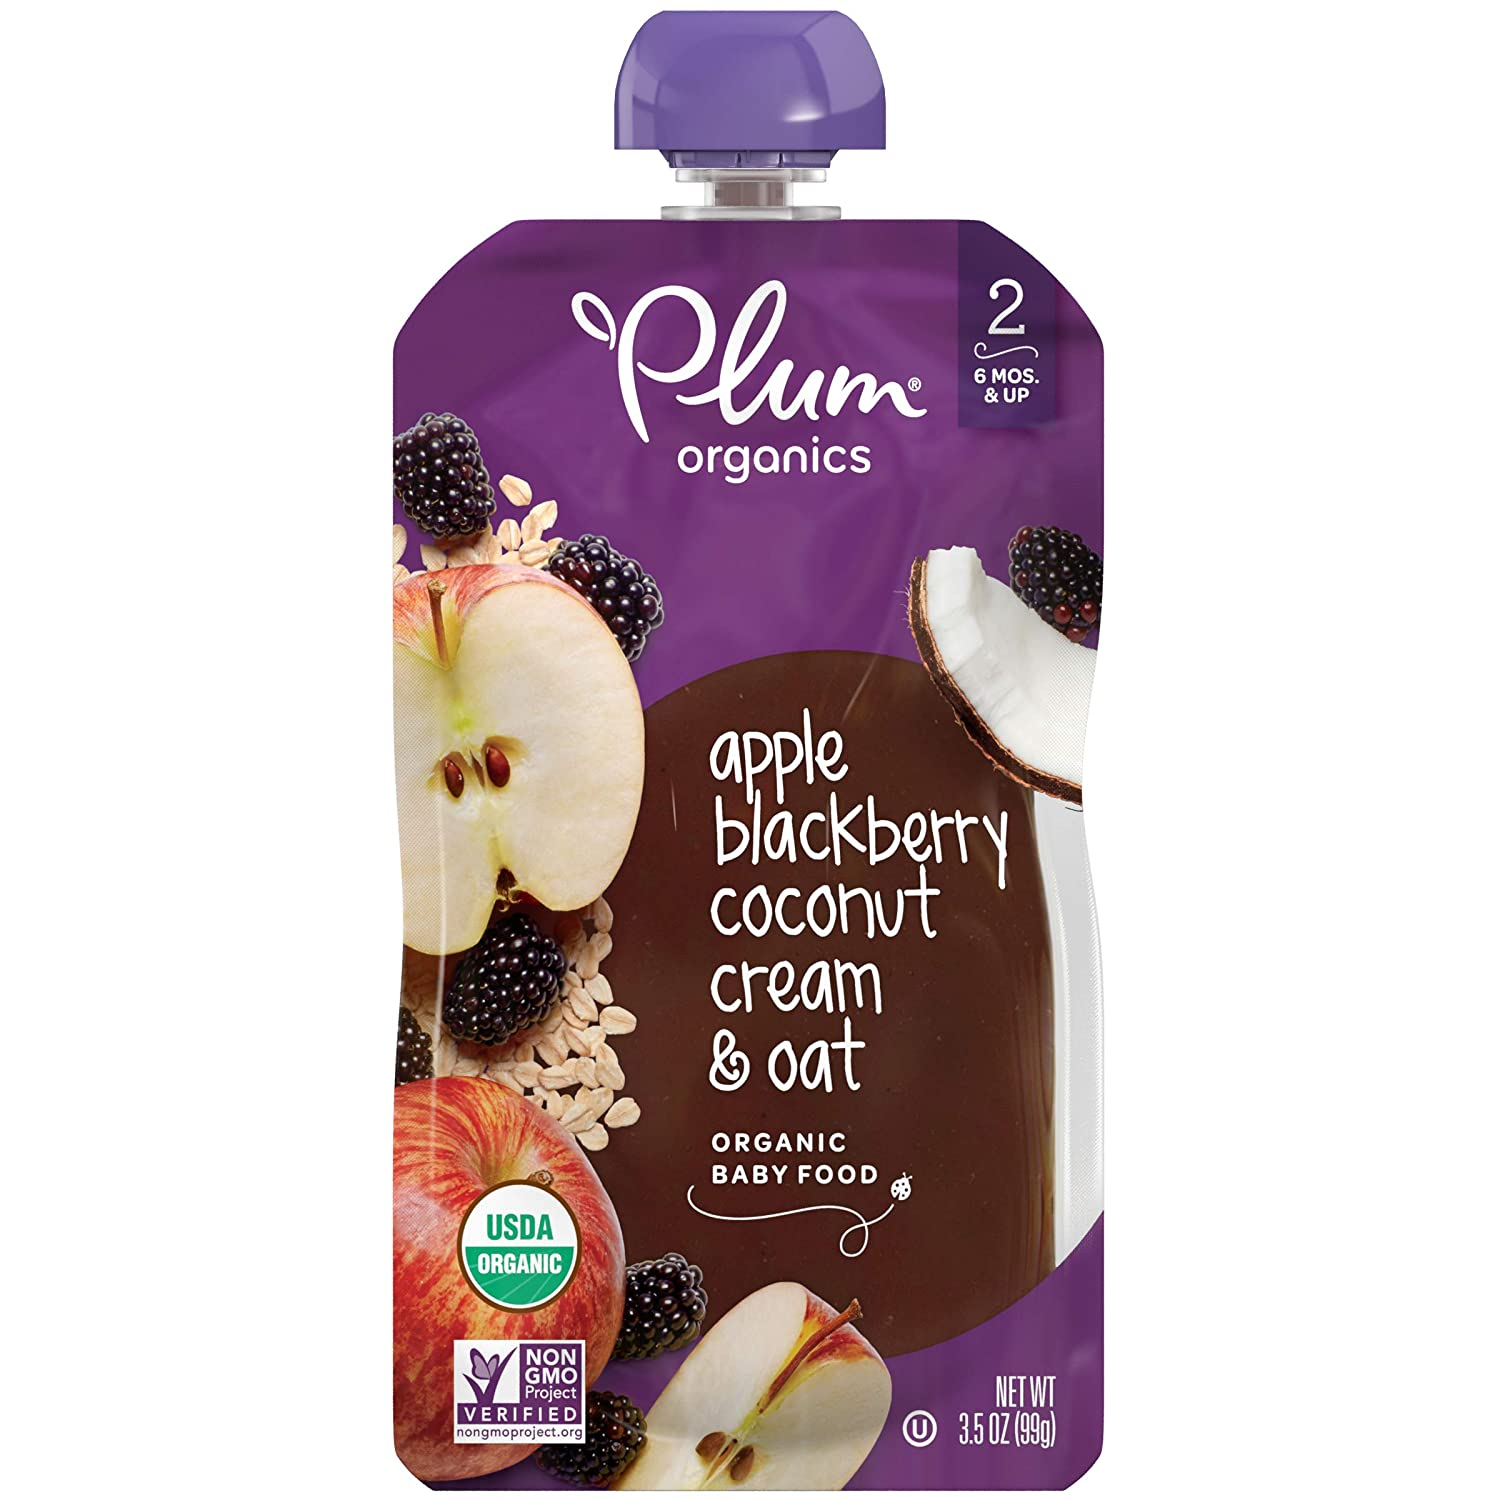 Plum Organics Stage 2, Organic Baby Food, Apple, Blackberry, Coconut Cream & Oat, 3.5 Ounce Pouch (Pack of 12) (Packaging May Vary)